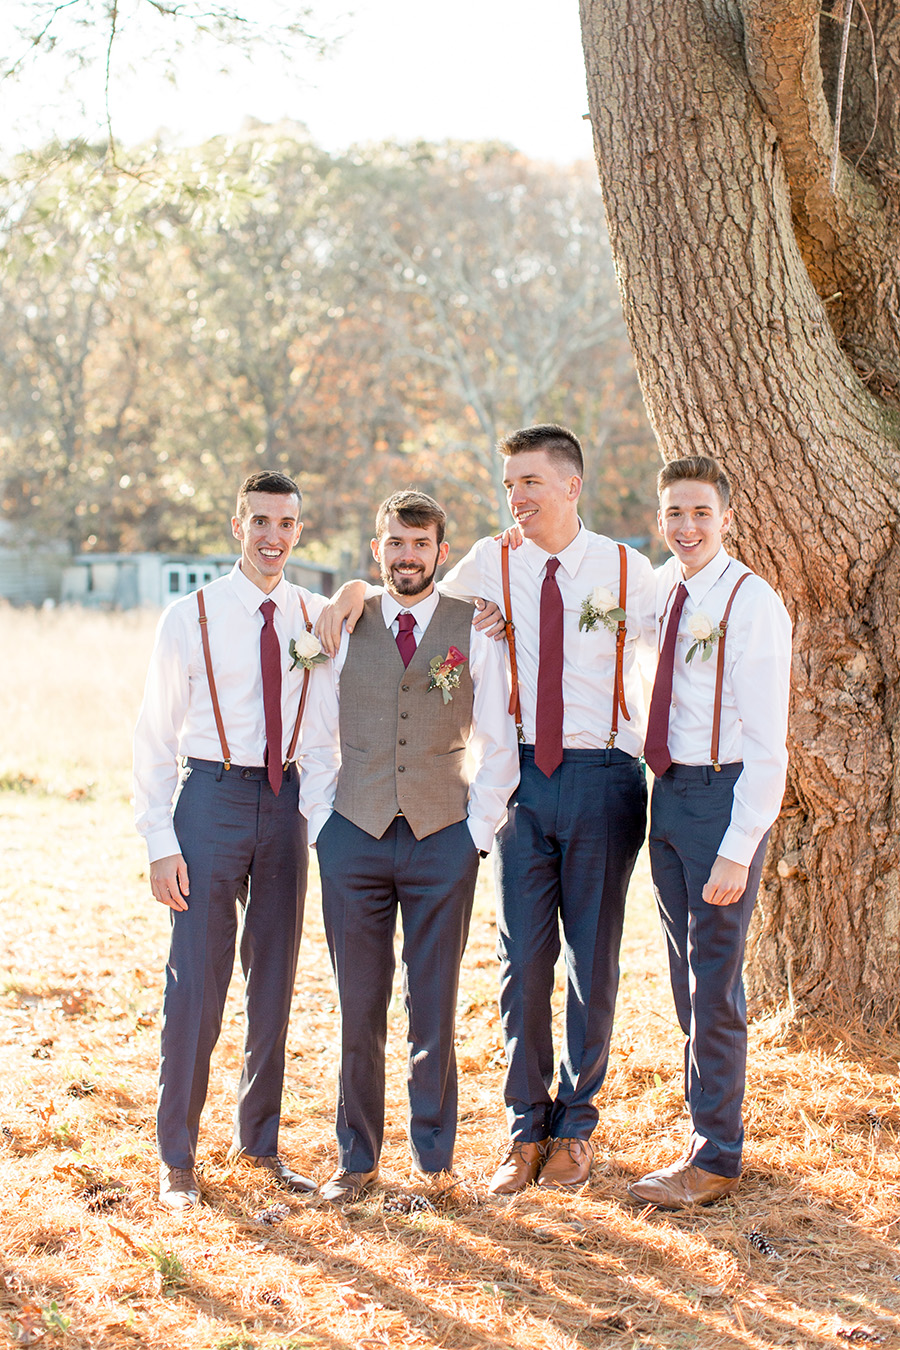 groom with his groomsmen in suspenders and navy pants